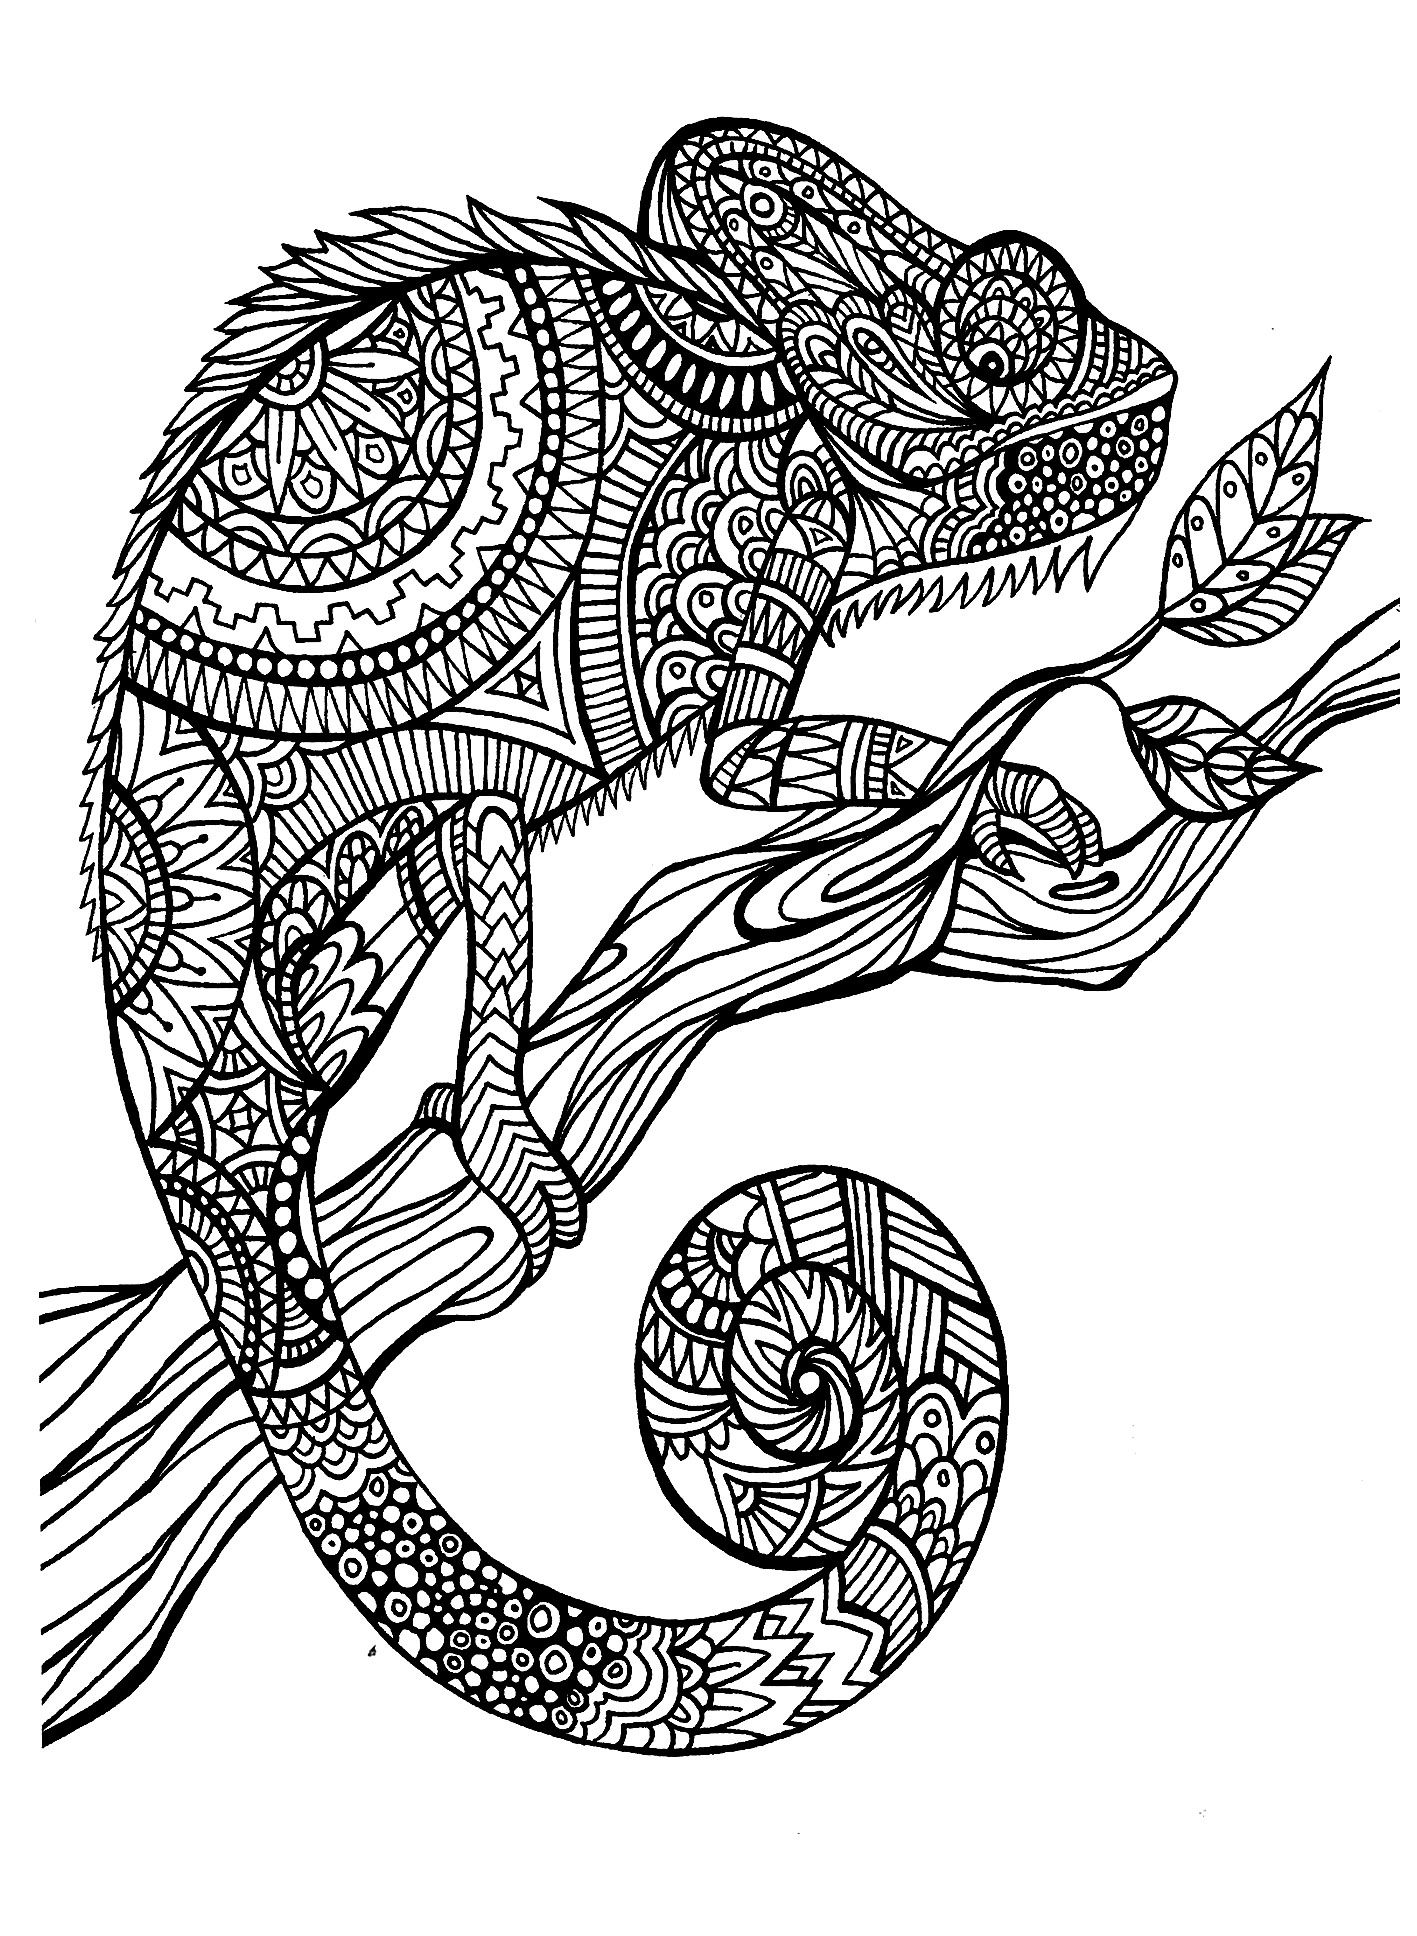 Disney zentangle coloring pages - Free Coloring Page Coloring Adult Cameleon Patterns A Magnificien Cameleon To Color